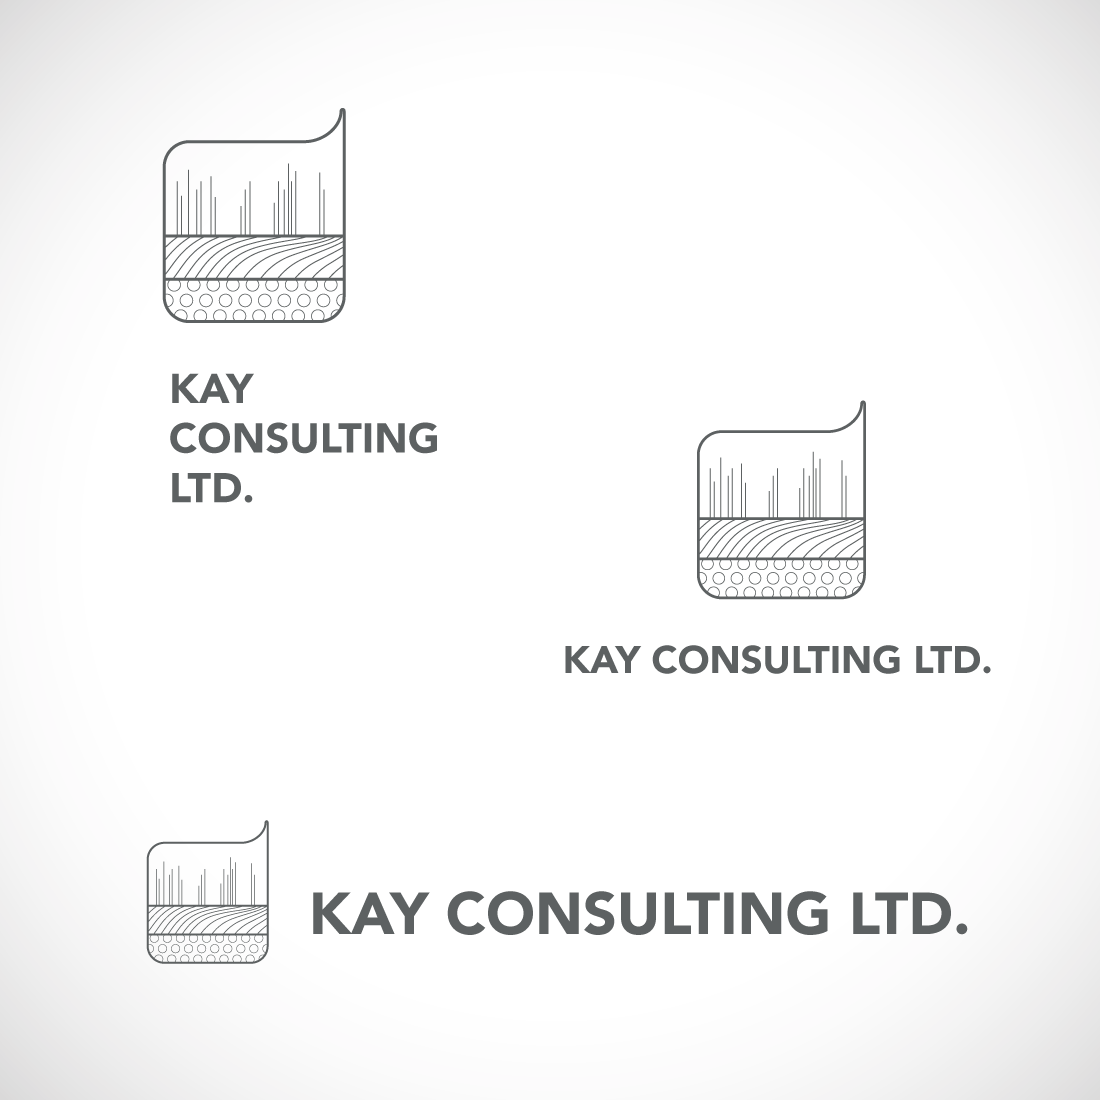 Kay Consulting greyscale logo designs